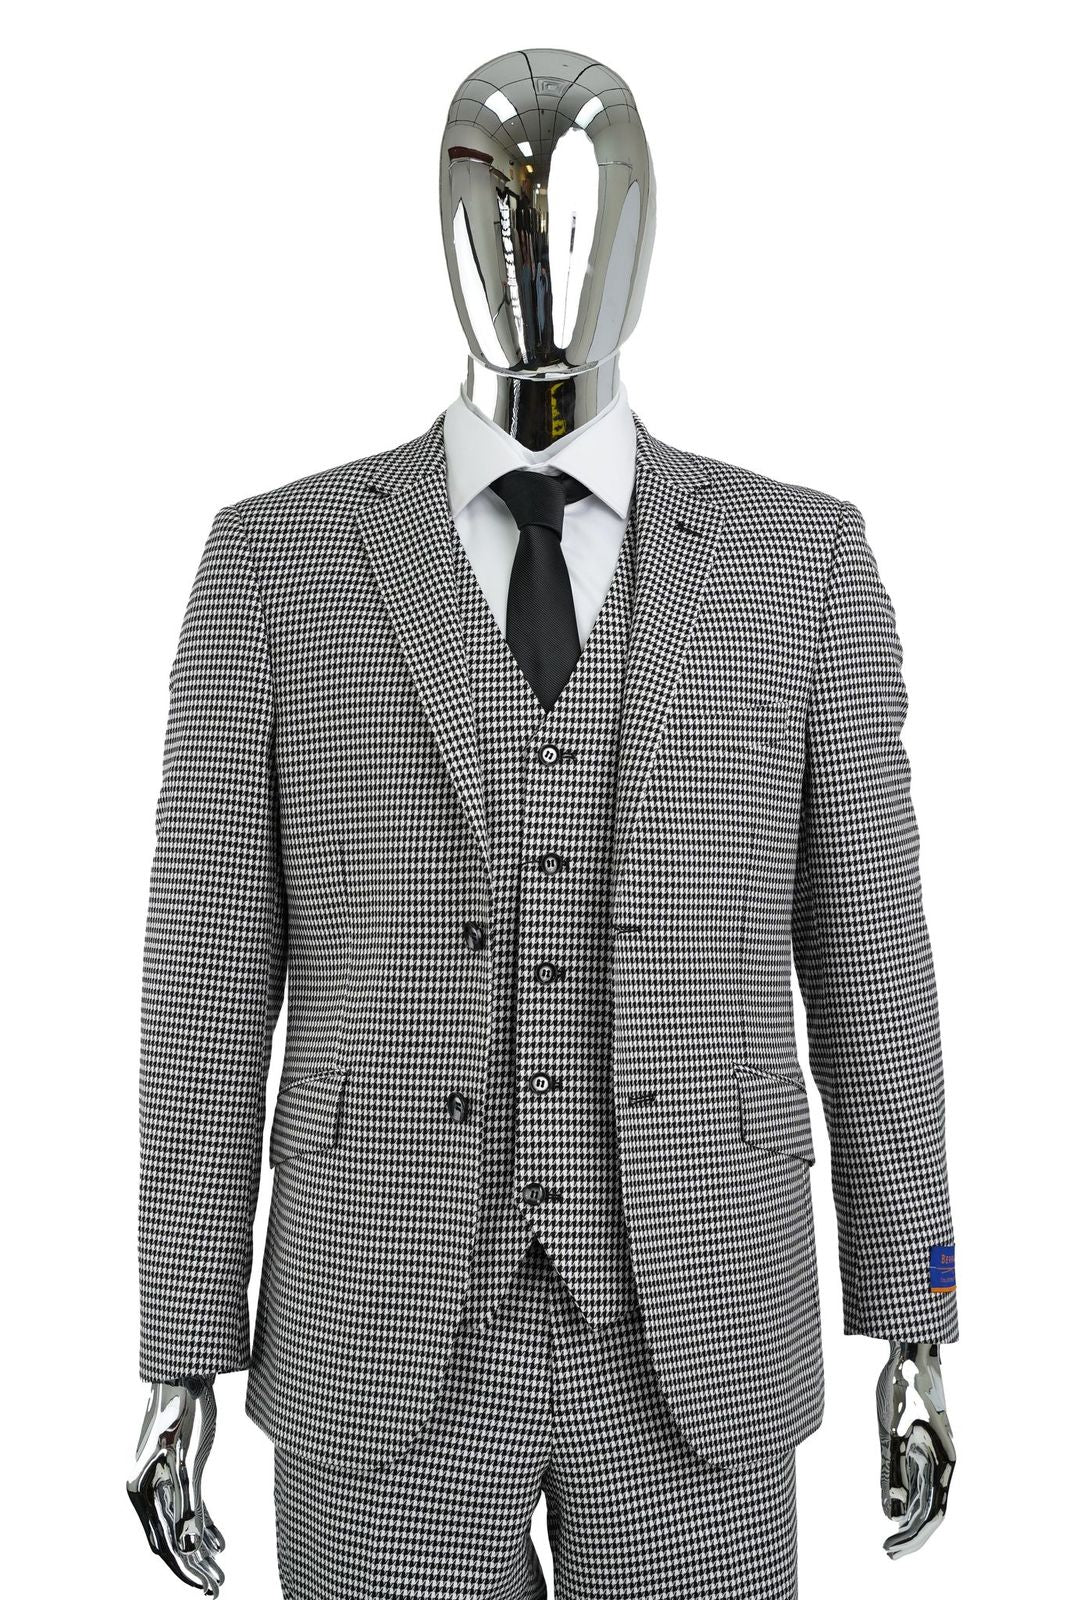 Q7025 SLIM FIT SUIT